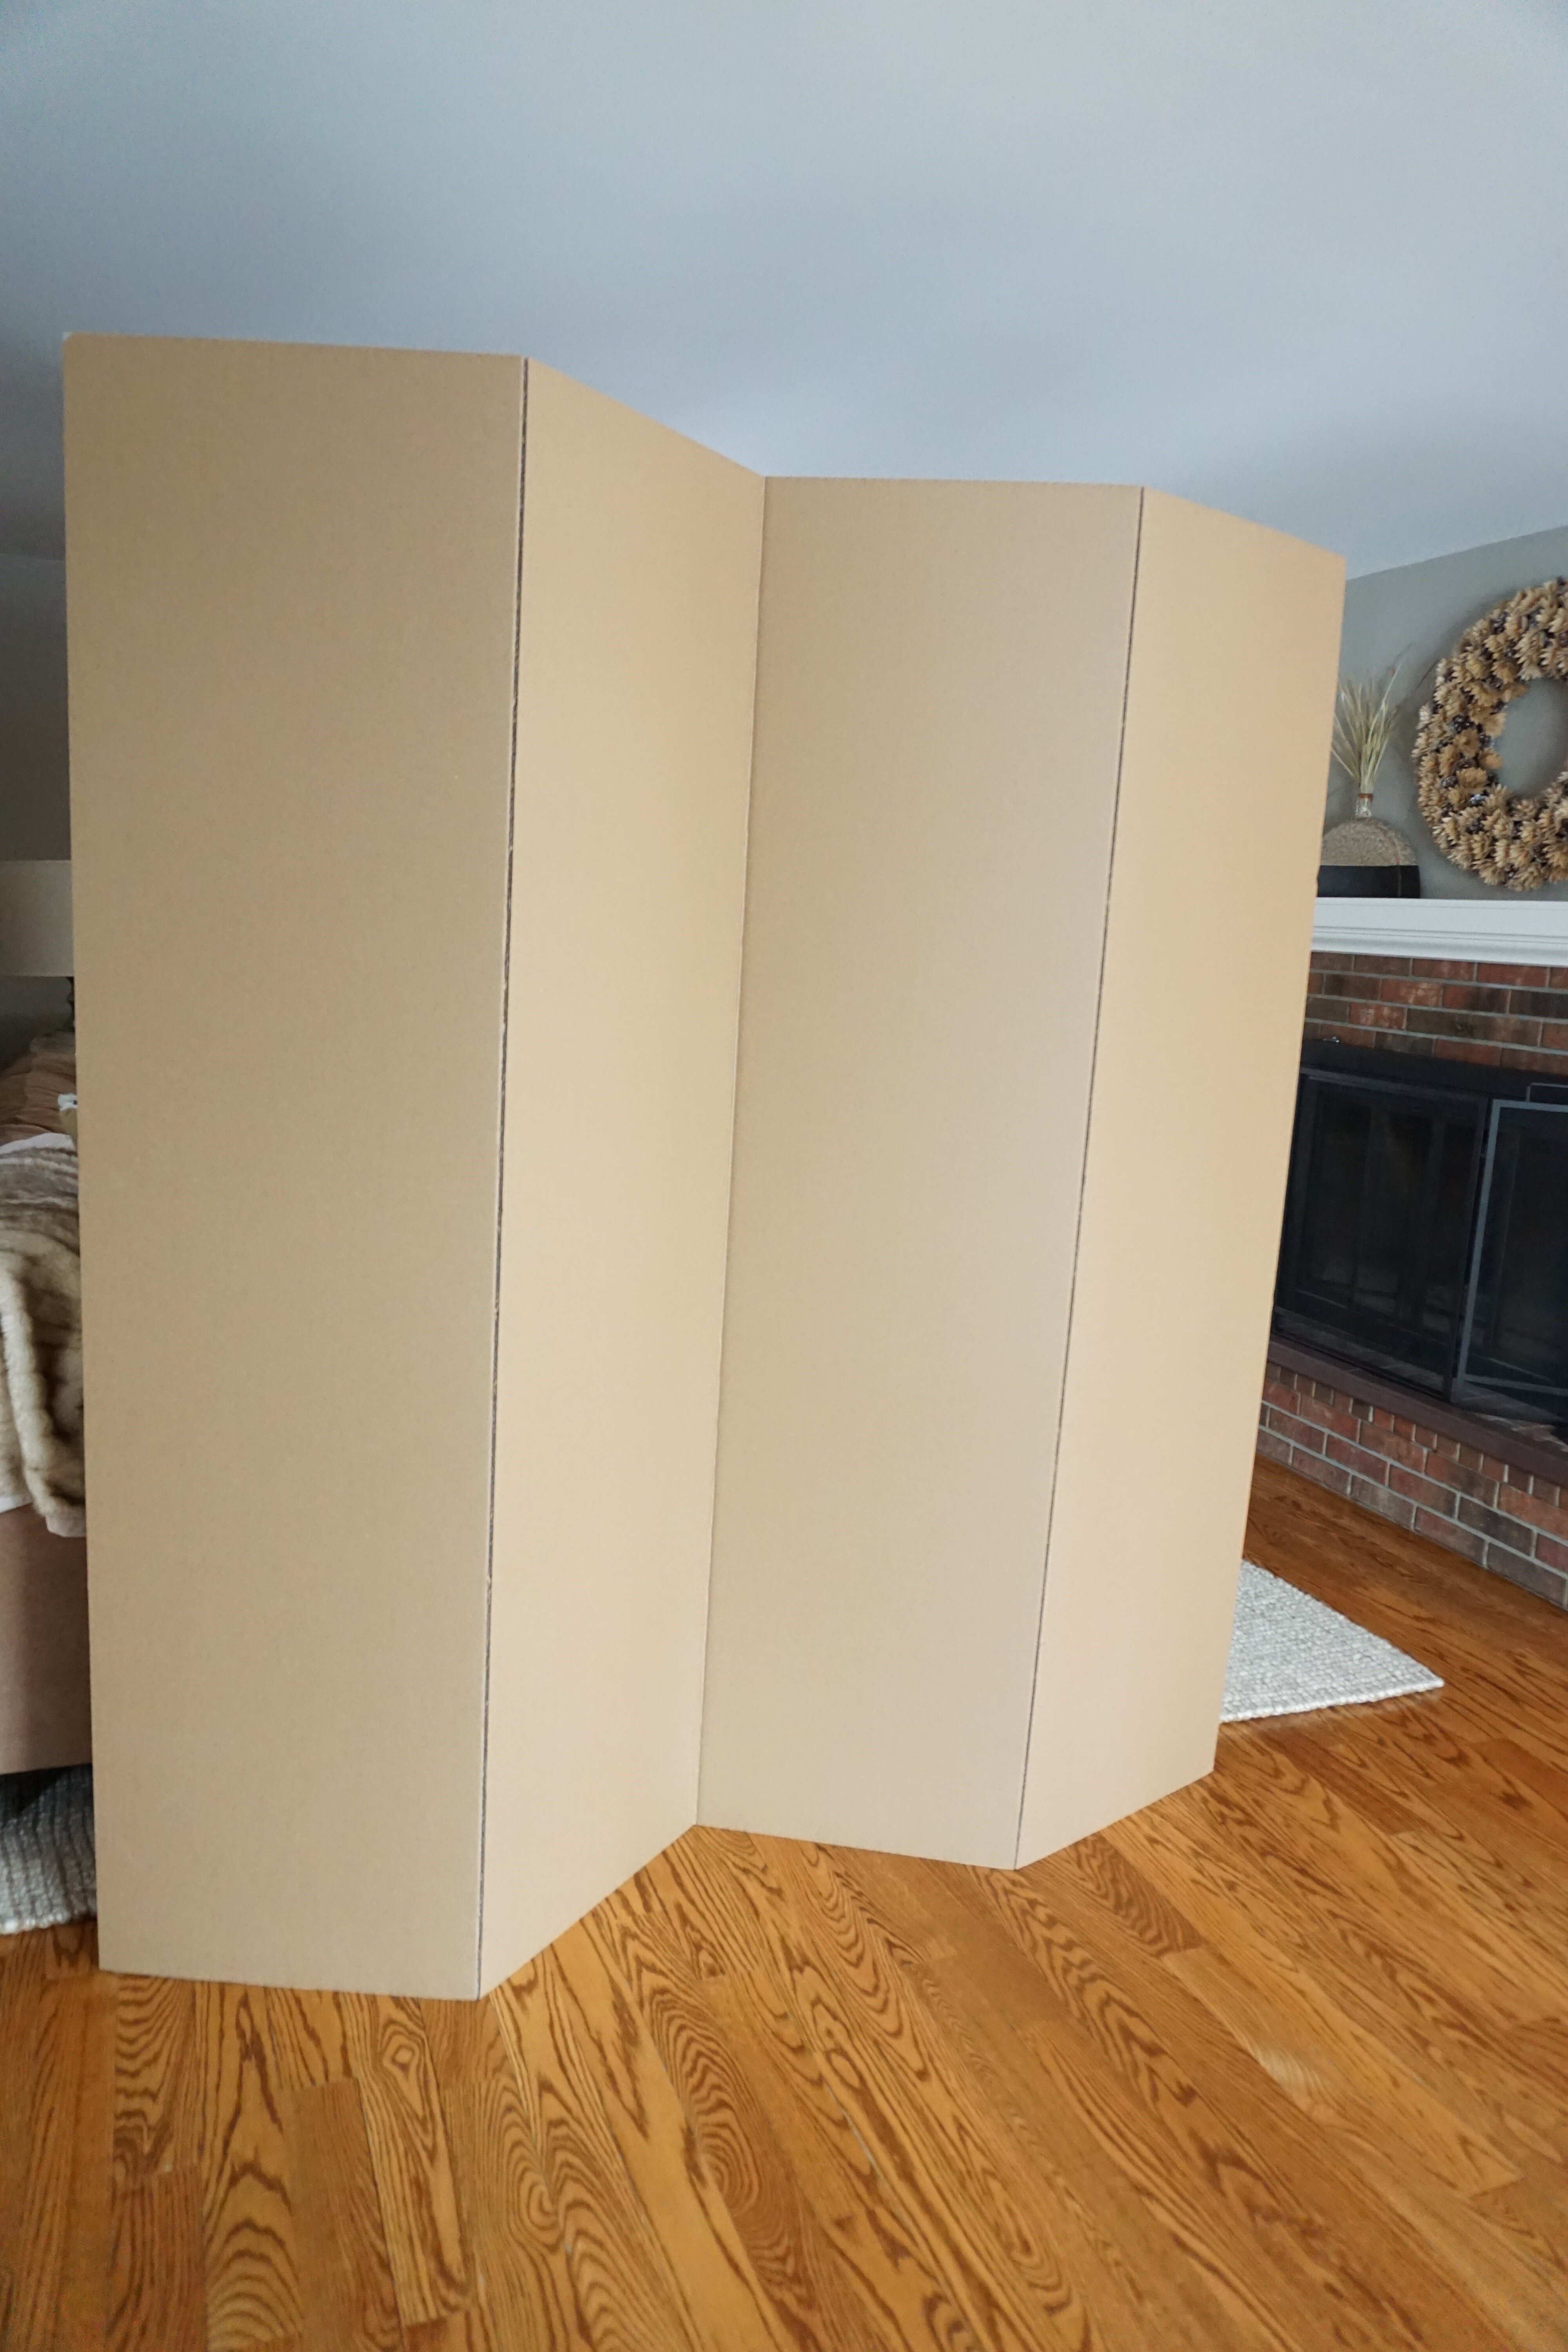 Symple Stuff Privacy Cardboard 4 Panel Room Divider Reviews Wayfair